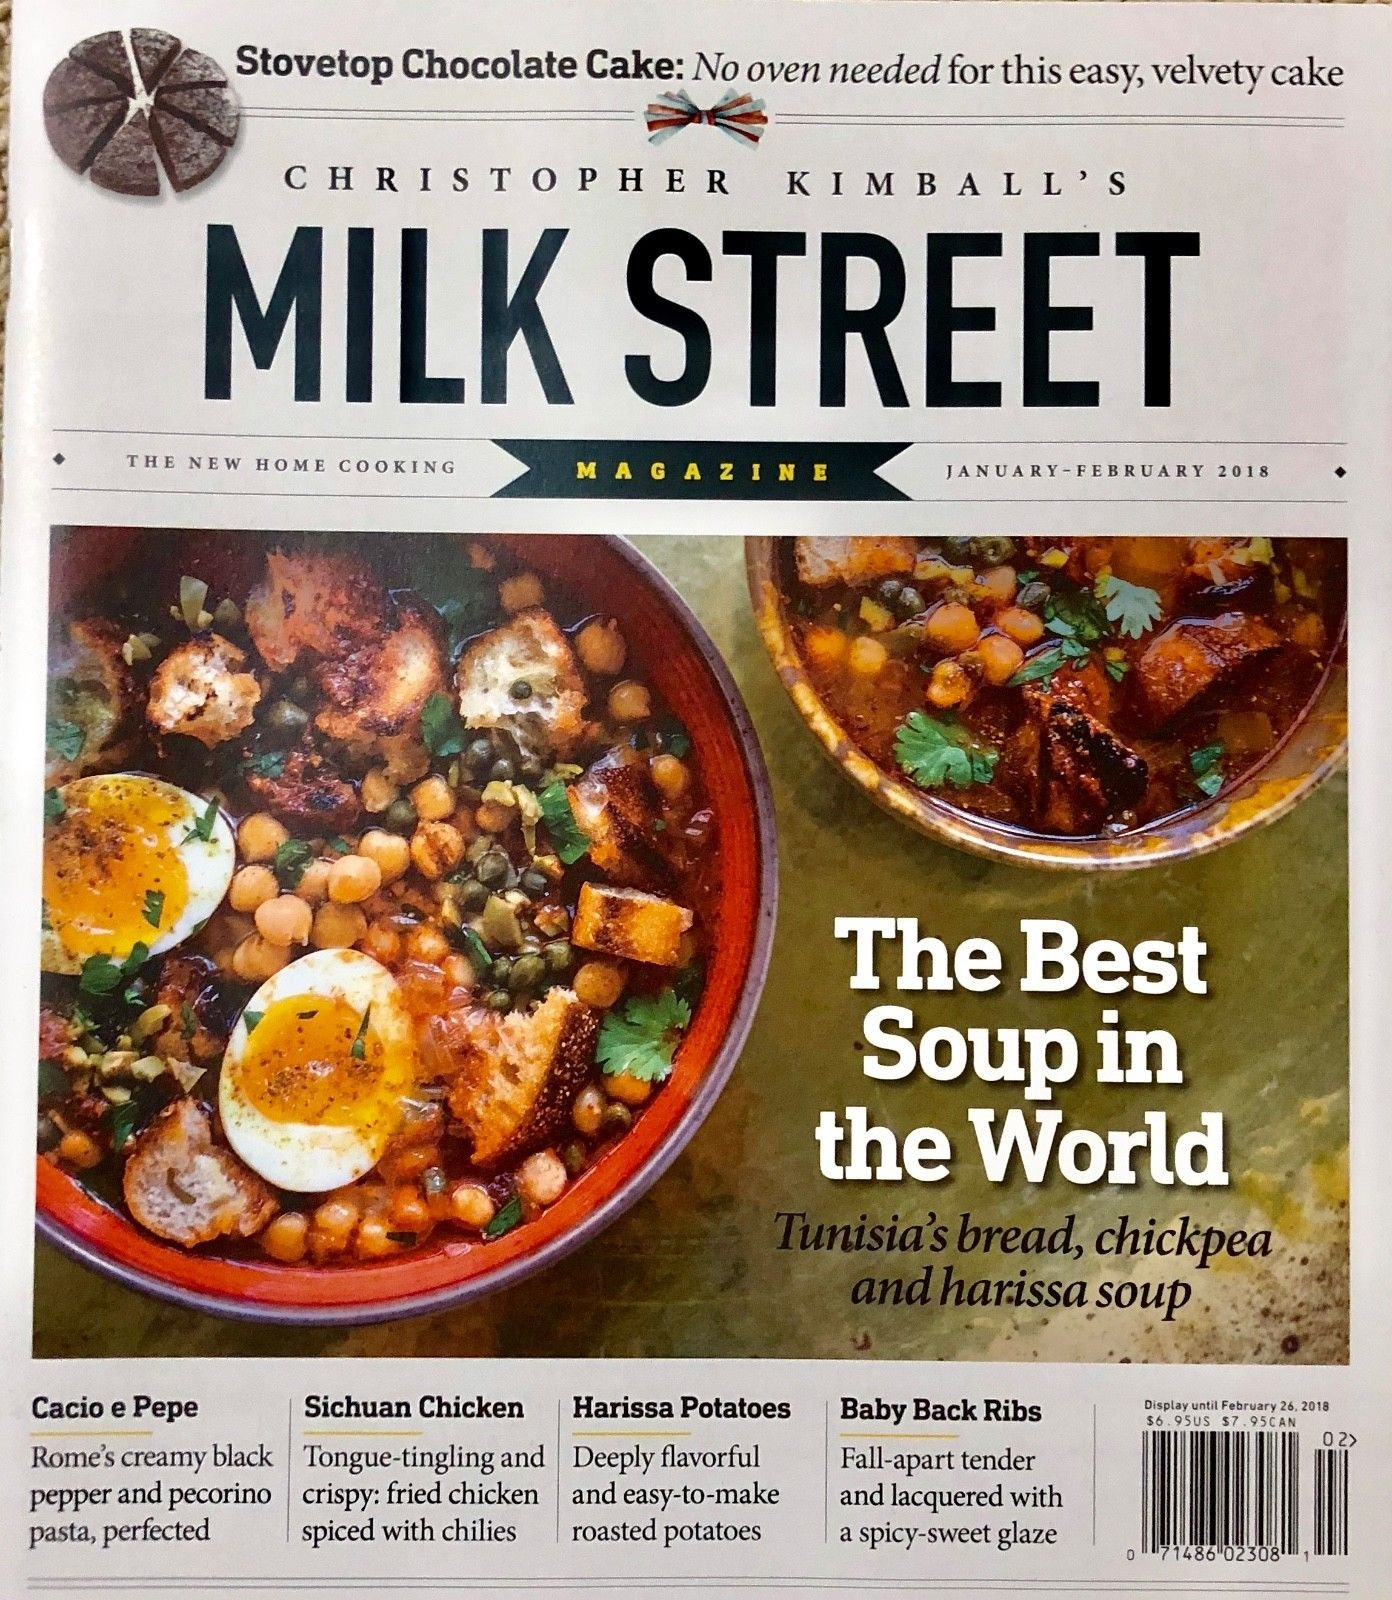 Milk Street The New Home Cooking JAN/FEB 2018